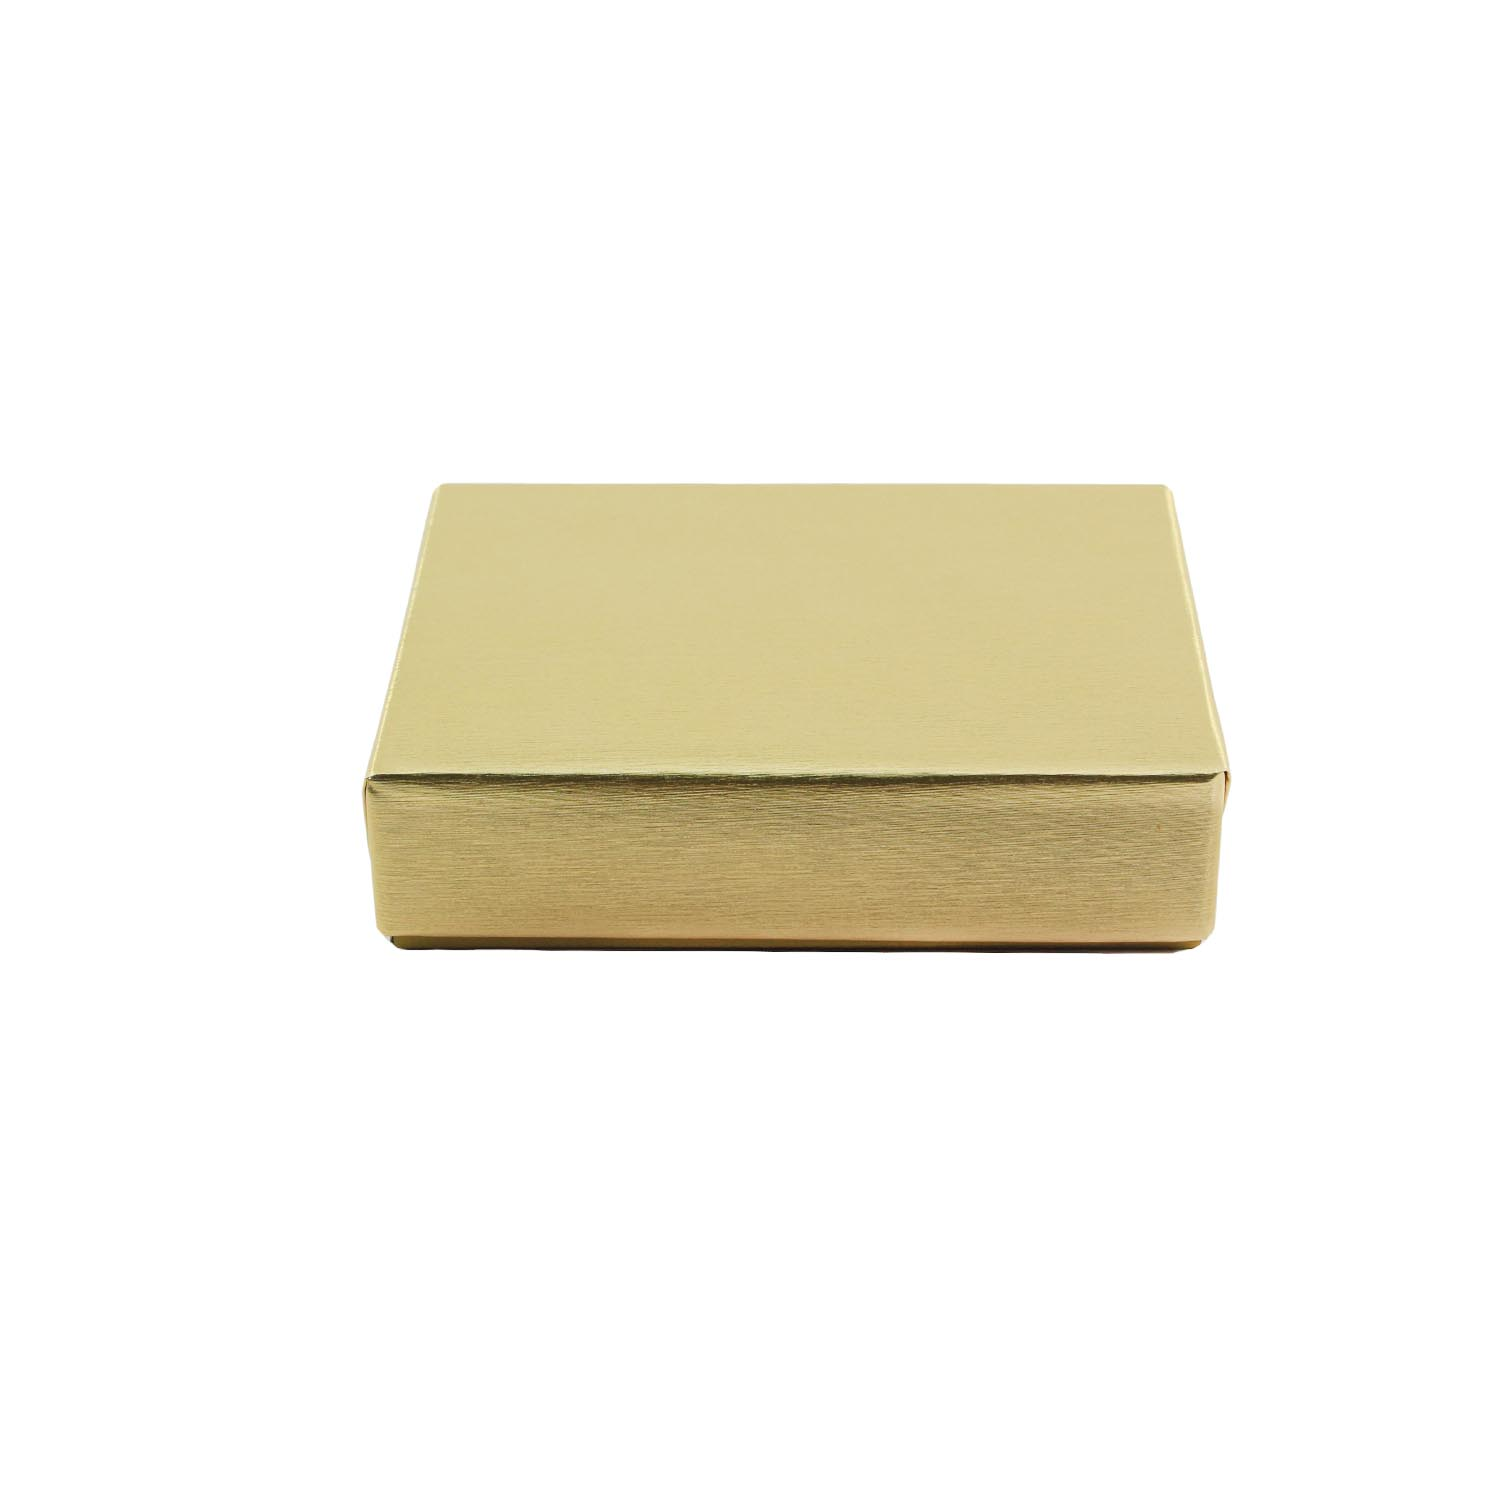 1/4 lb.  Gold Candy Box